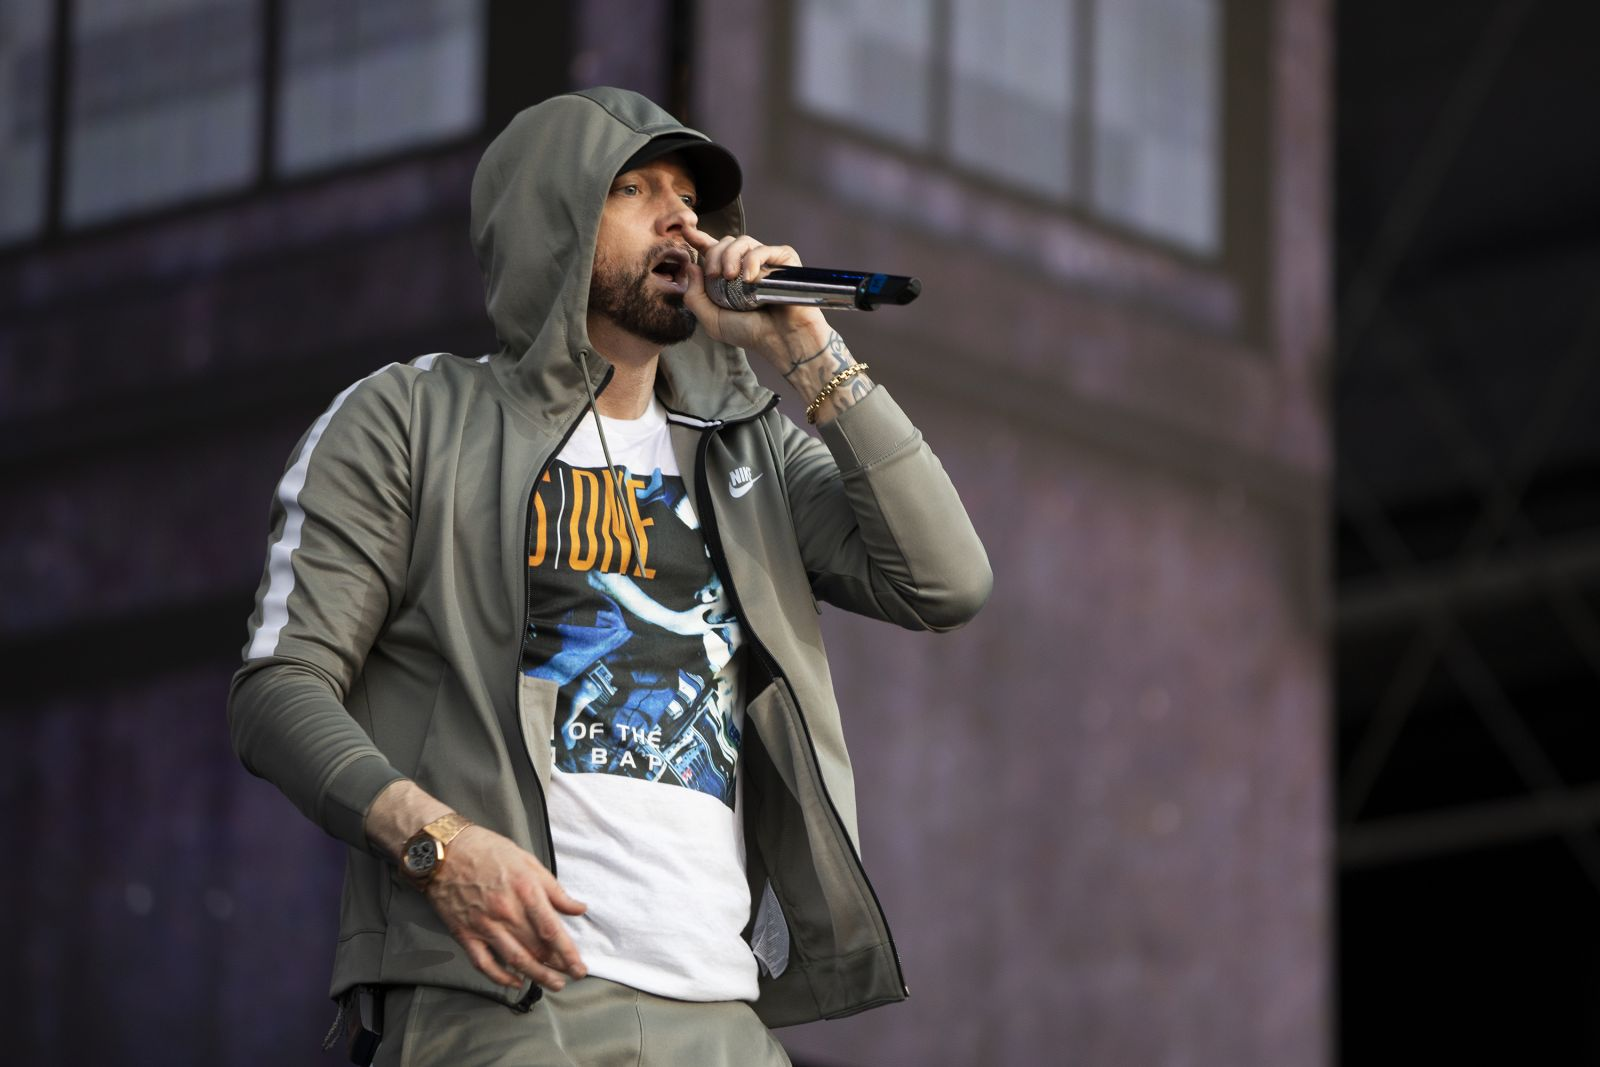 Eminem's 2018 performance at Netherlands Nijmegen Revival Tour. Photo Credit: Jeremy Deputat